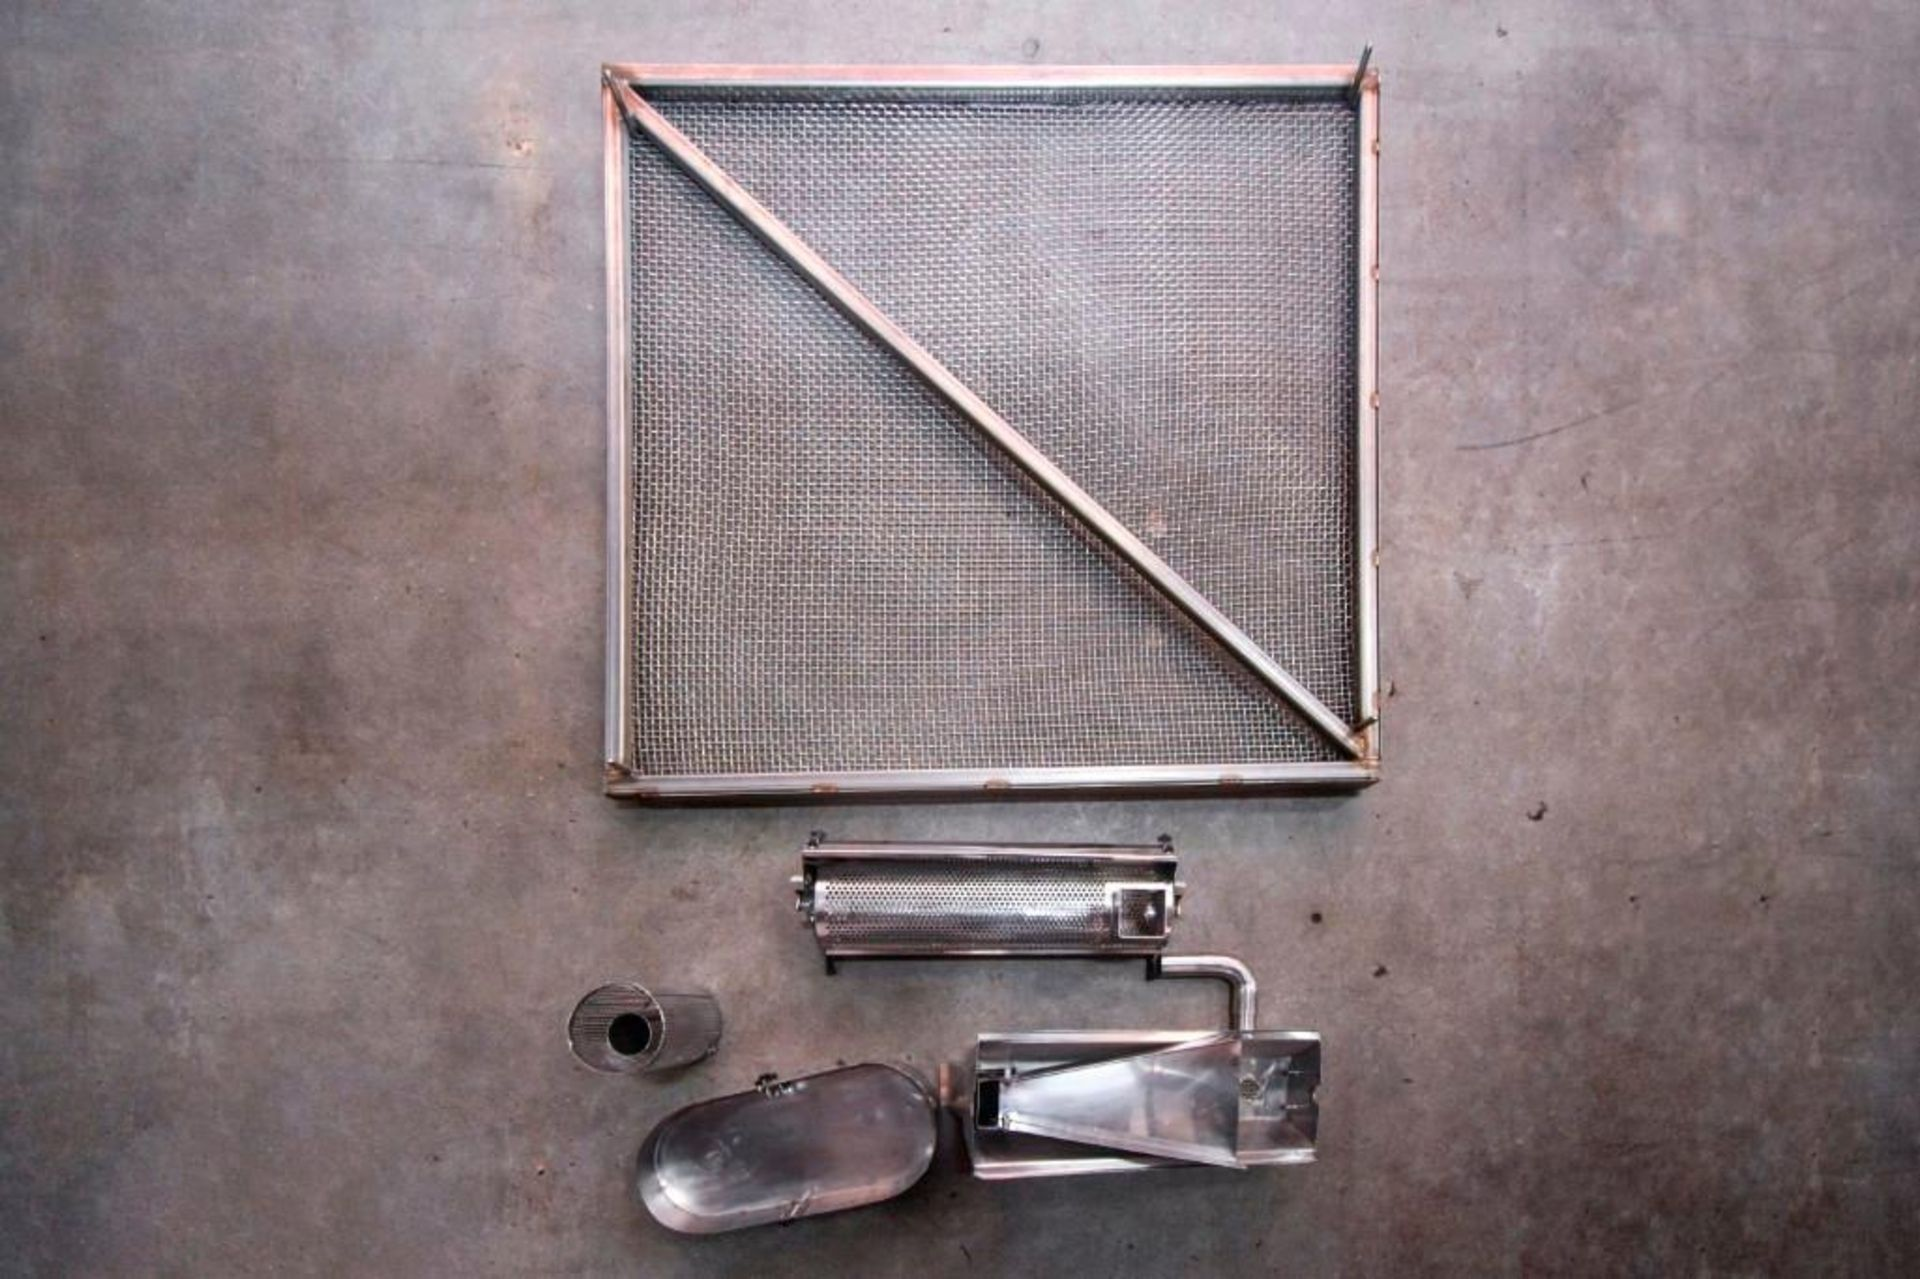 Screen and parts for Hopper and capsule deduster - Image 11 of 11